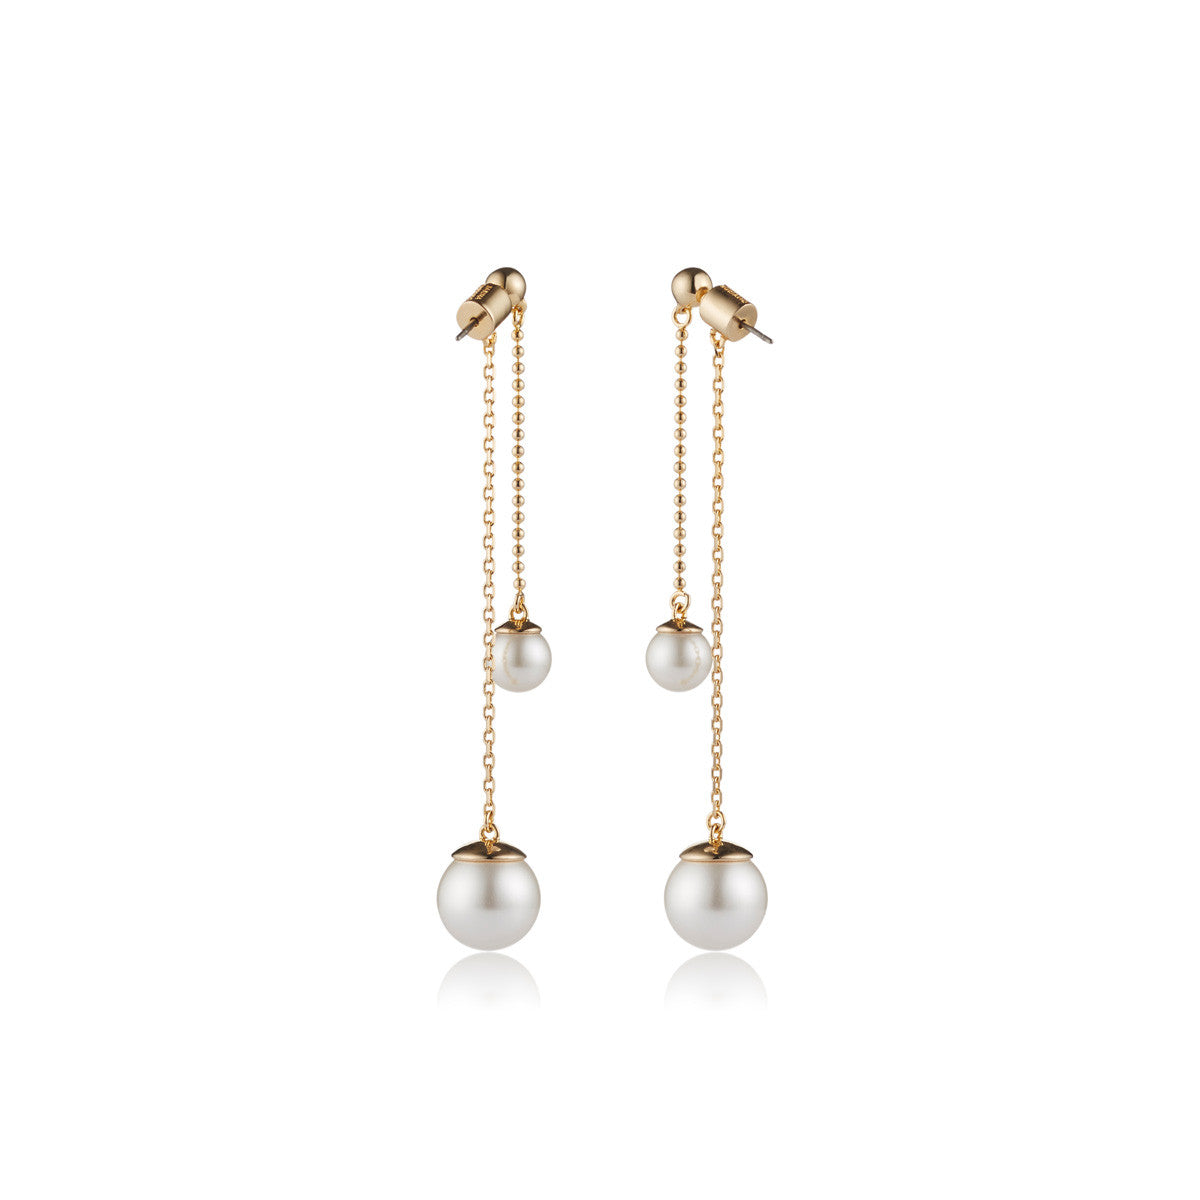 Solid brass, 18K gold plated Pendulus earrings hang with 2 perfect Swarovski® crystal pearls – back